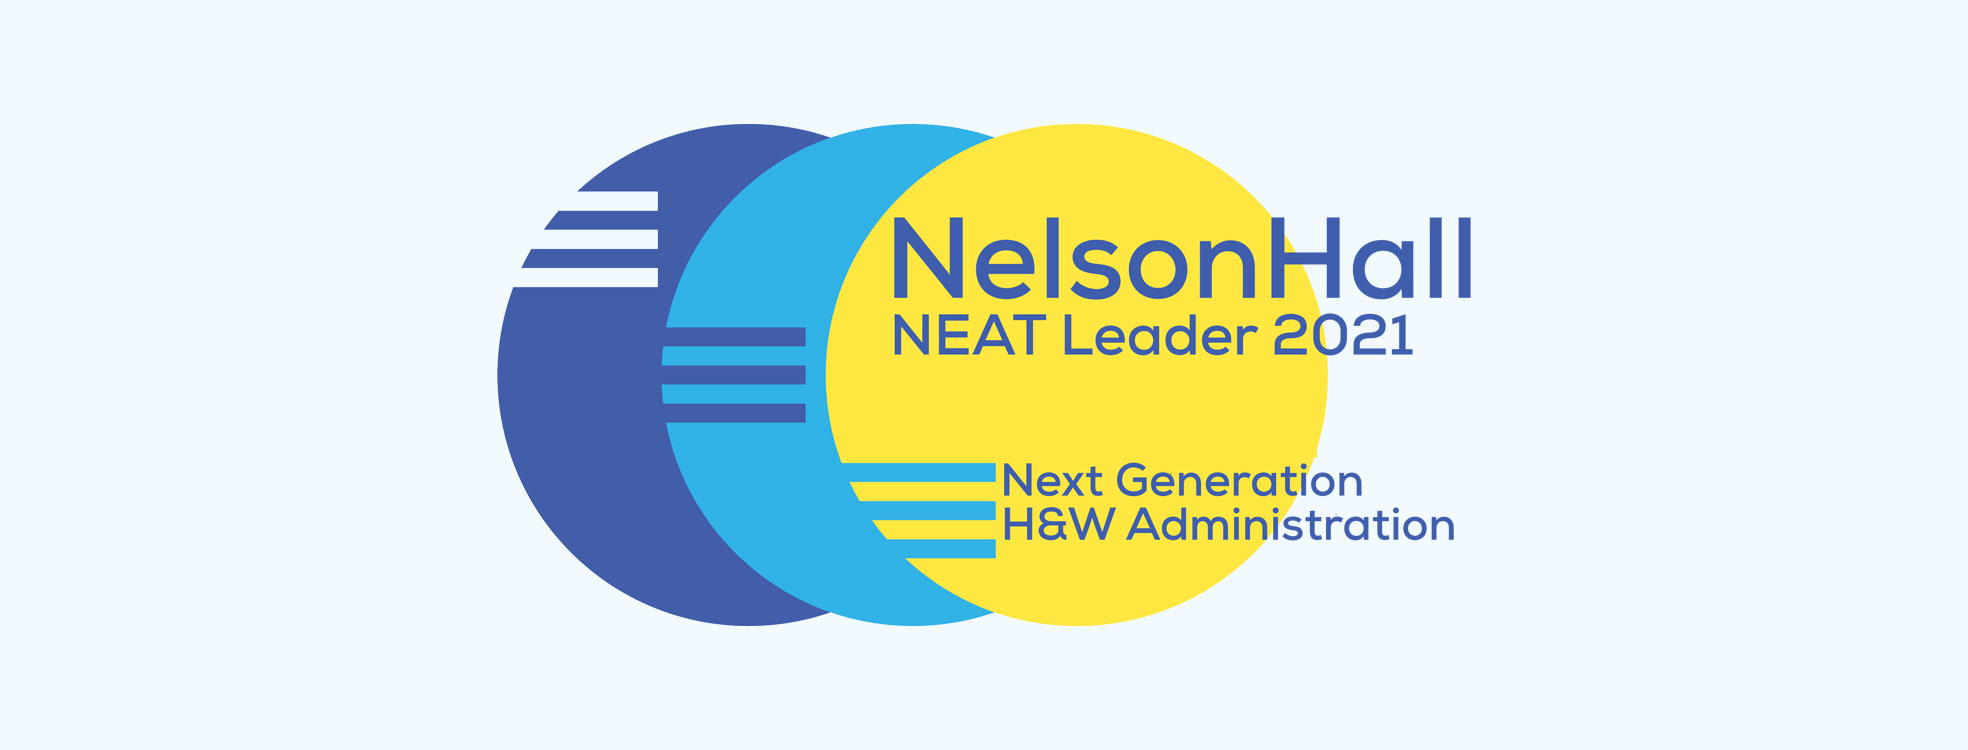 NelsonHall NEAT Leader 2021 - Next Generation H&W Administration Logo